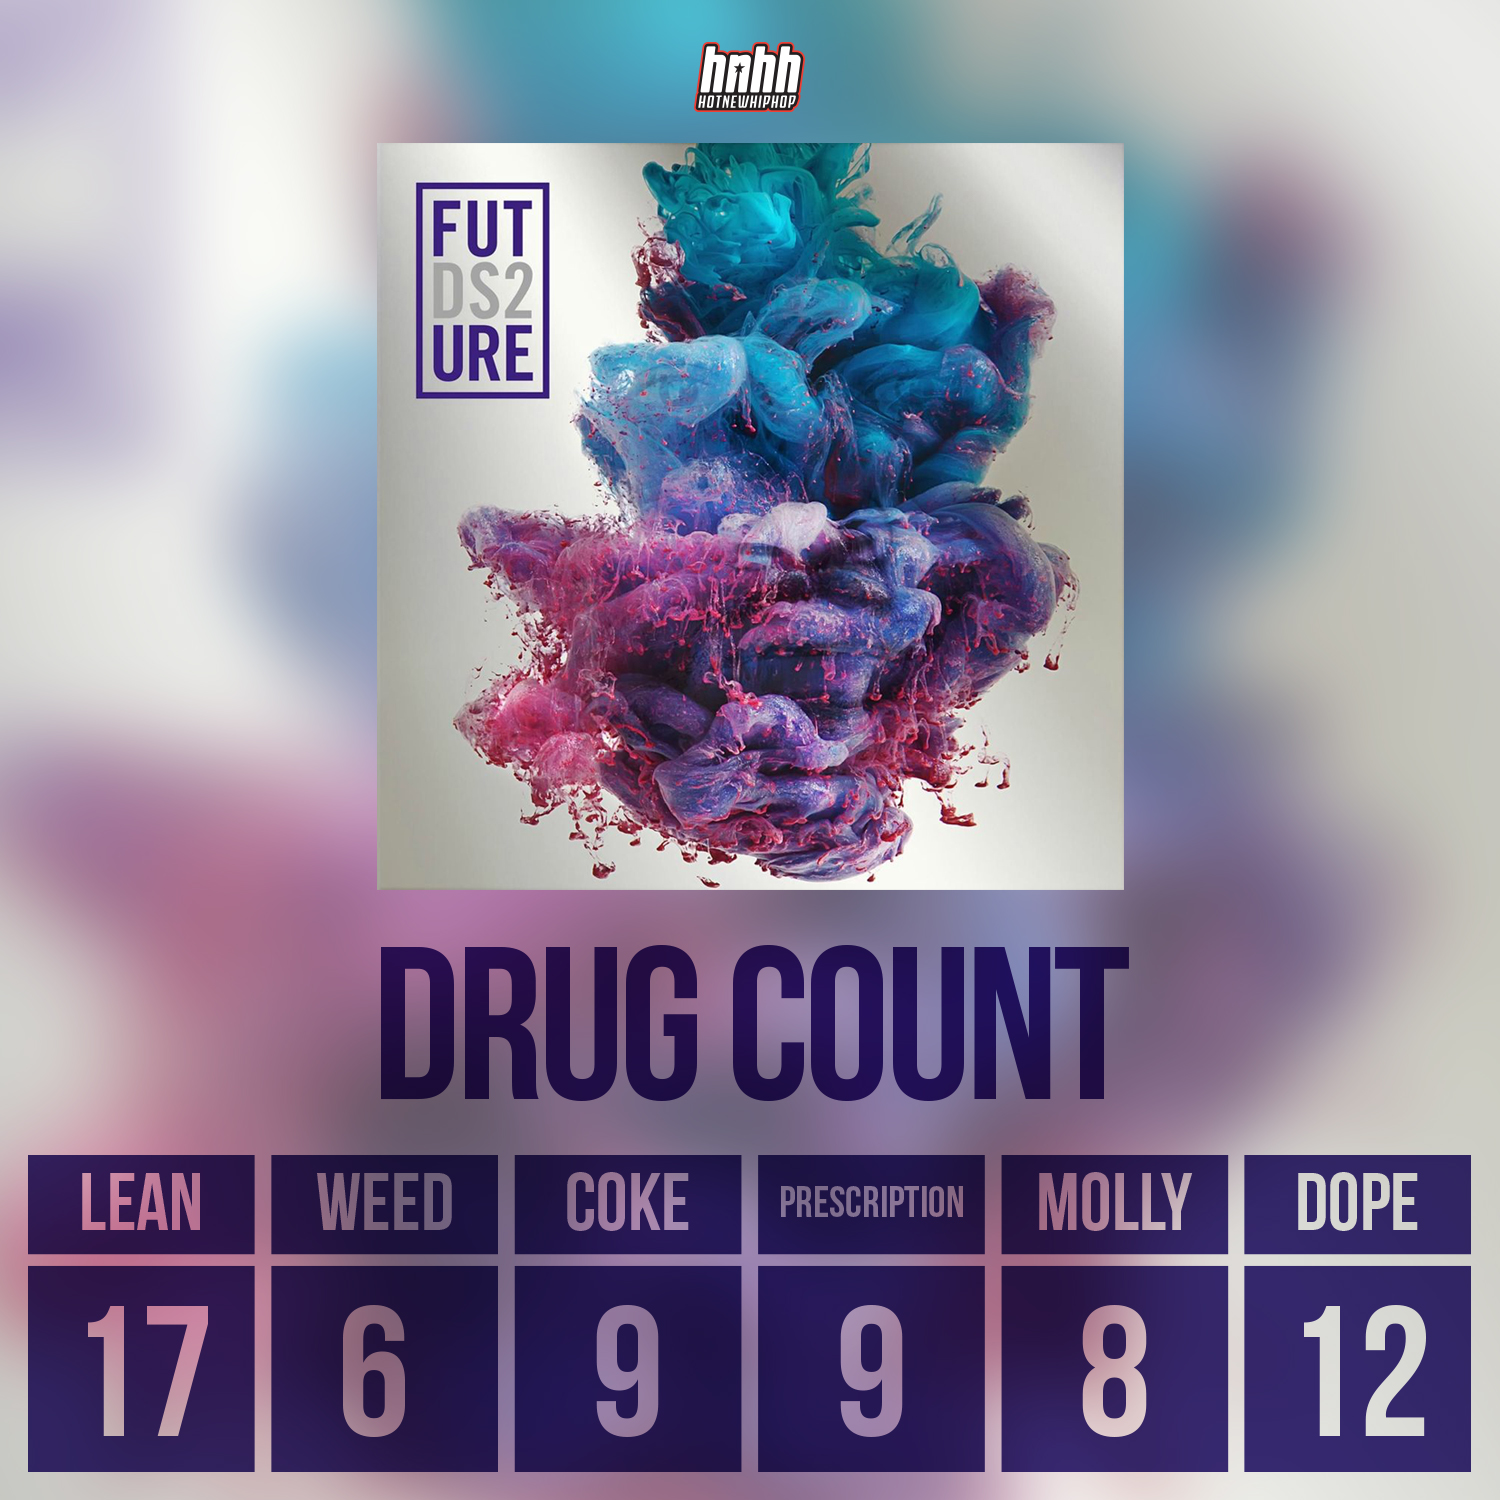 Futures Dirty Sprite 2 The Drug Count